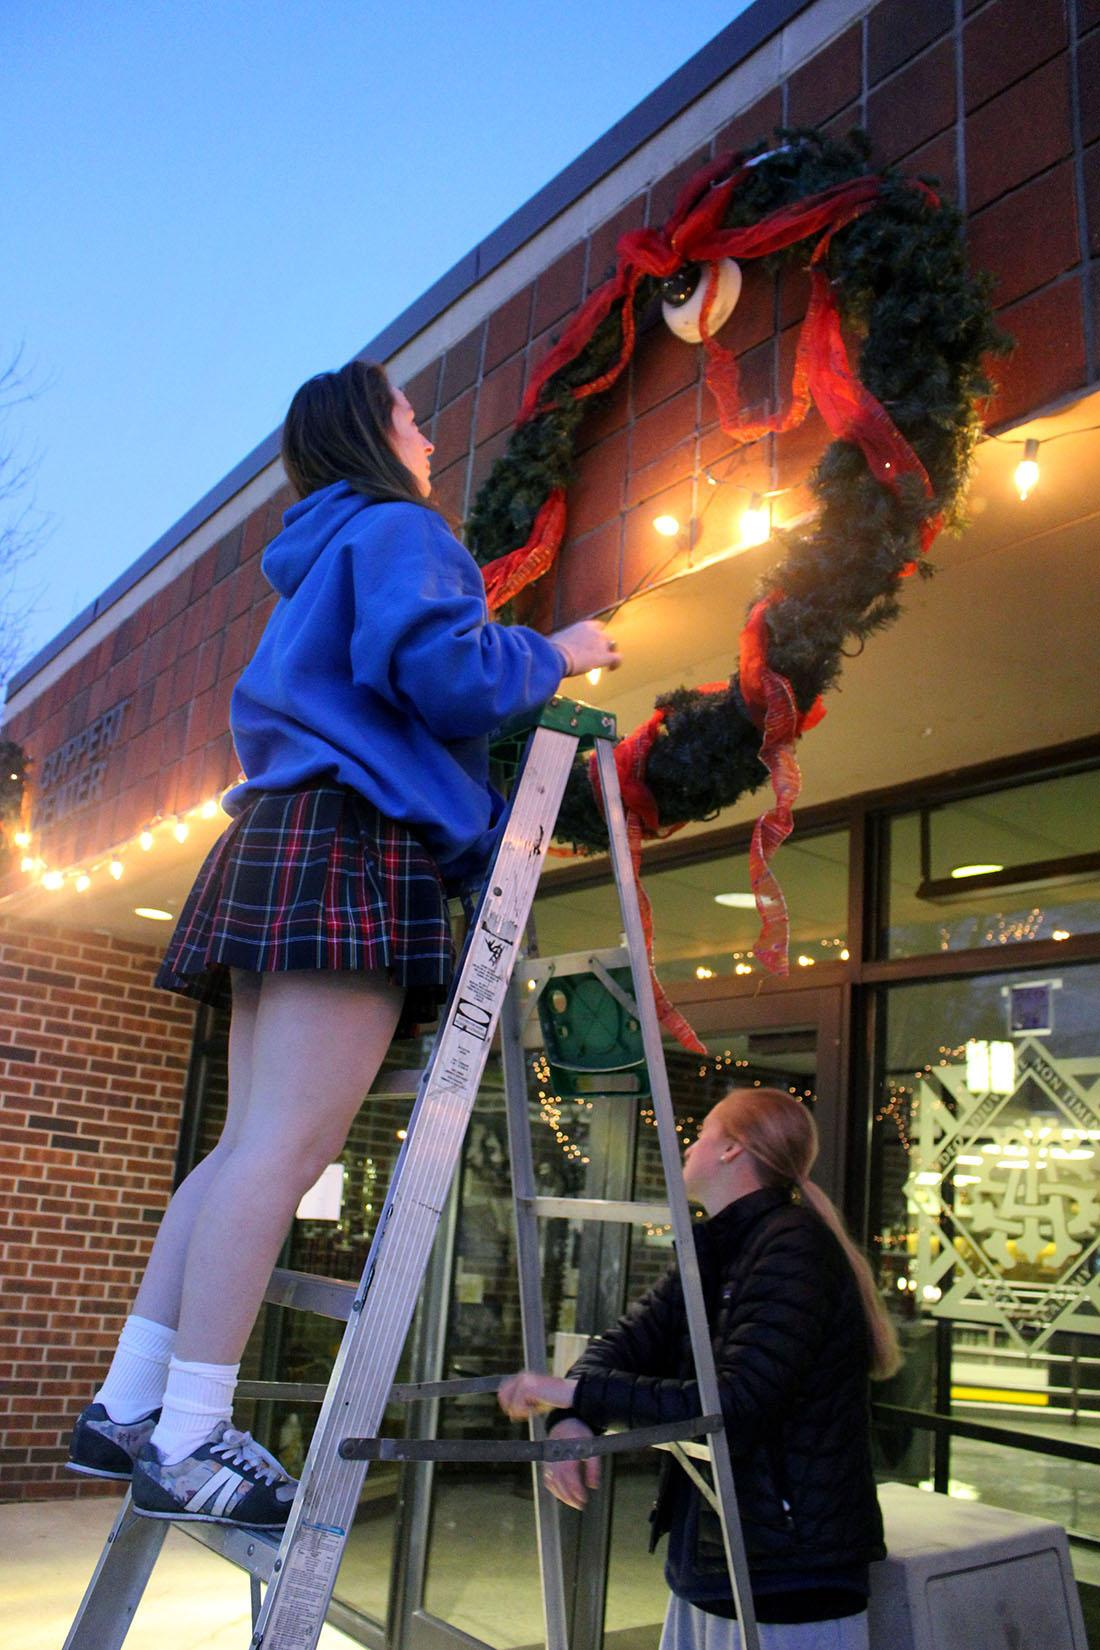 Senior Maddie Summers hangs a large wreath in front of the Goppert Center while classmate MaryMichael Hough assists. Students from the senior class gathered to decorate the quad for Christmas the morning of Dec. 9. photo by Kat Mediavilla